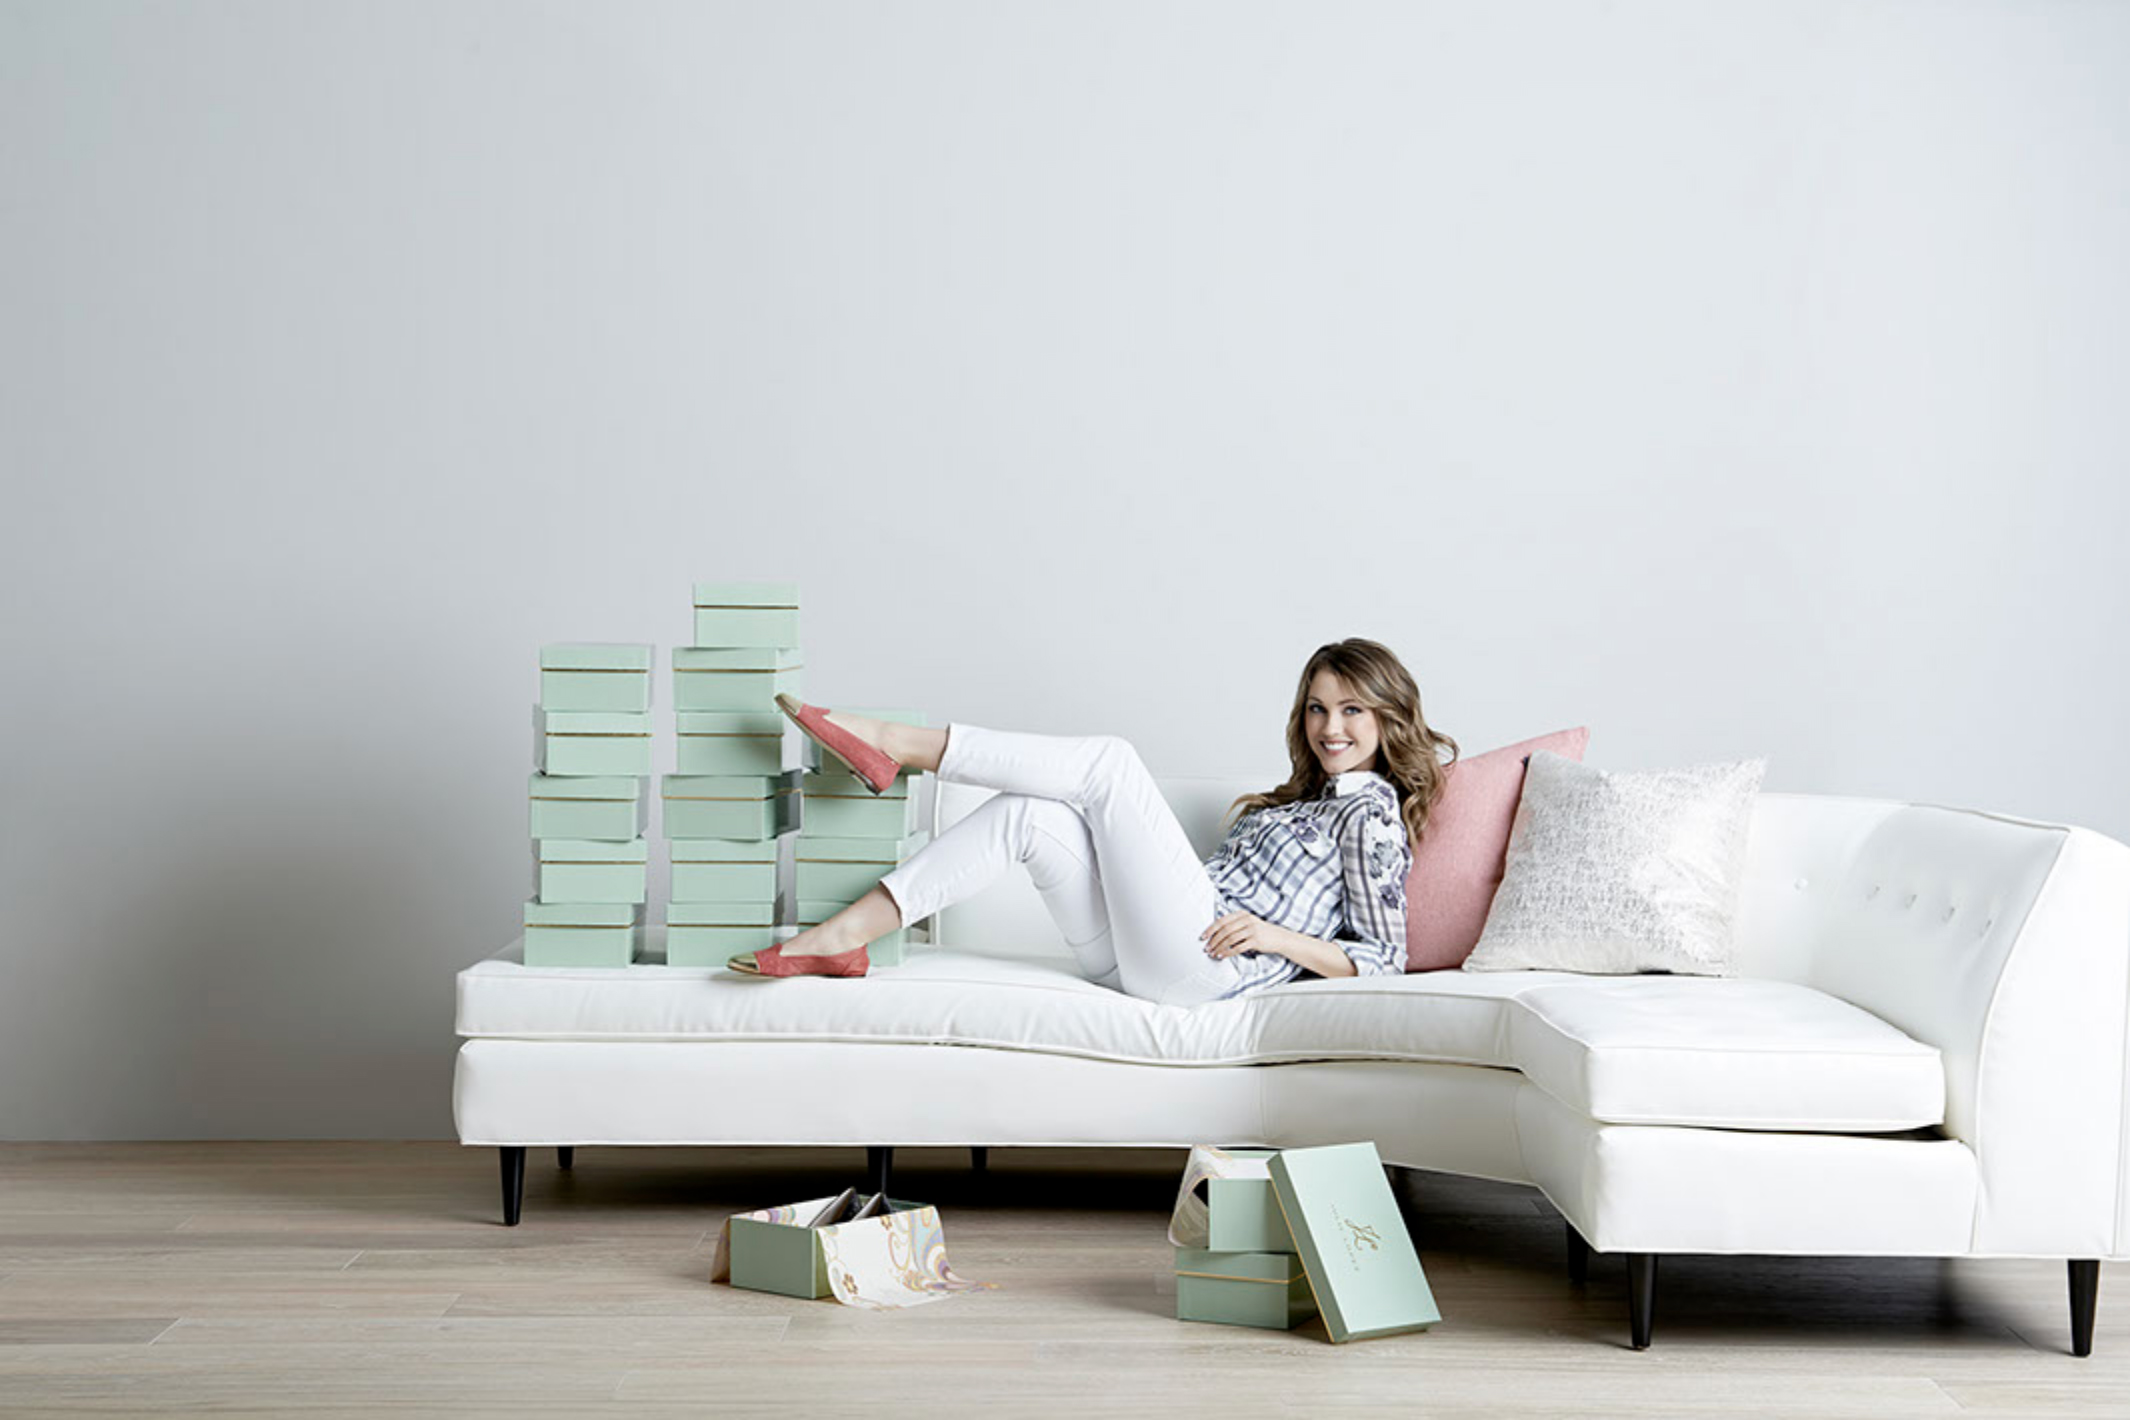 WO_Woman-Shoes-White Sectional